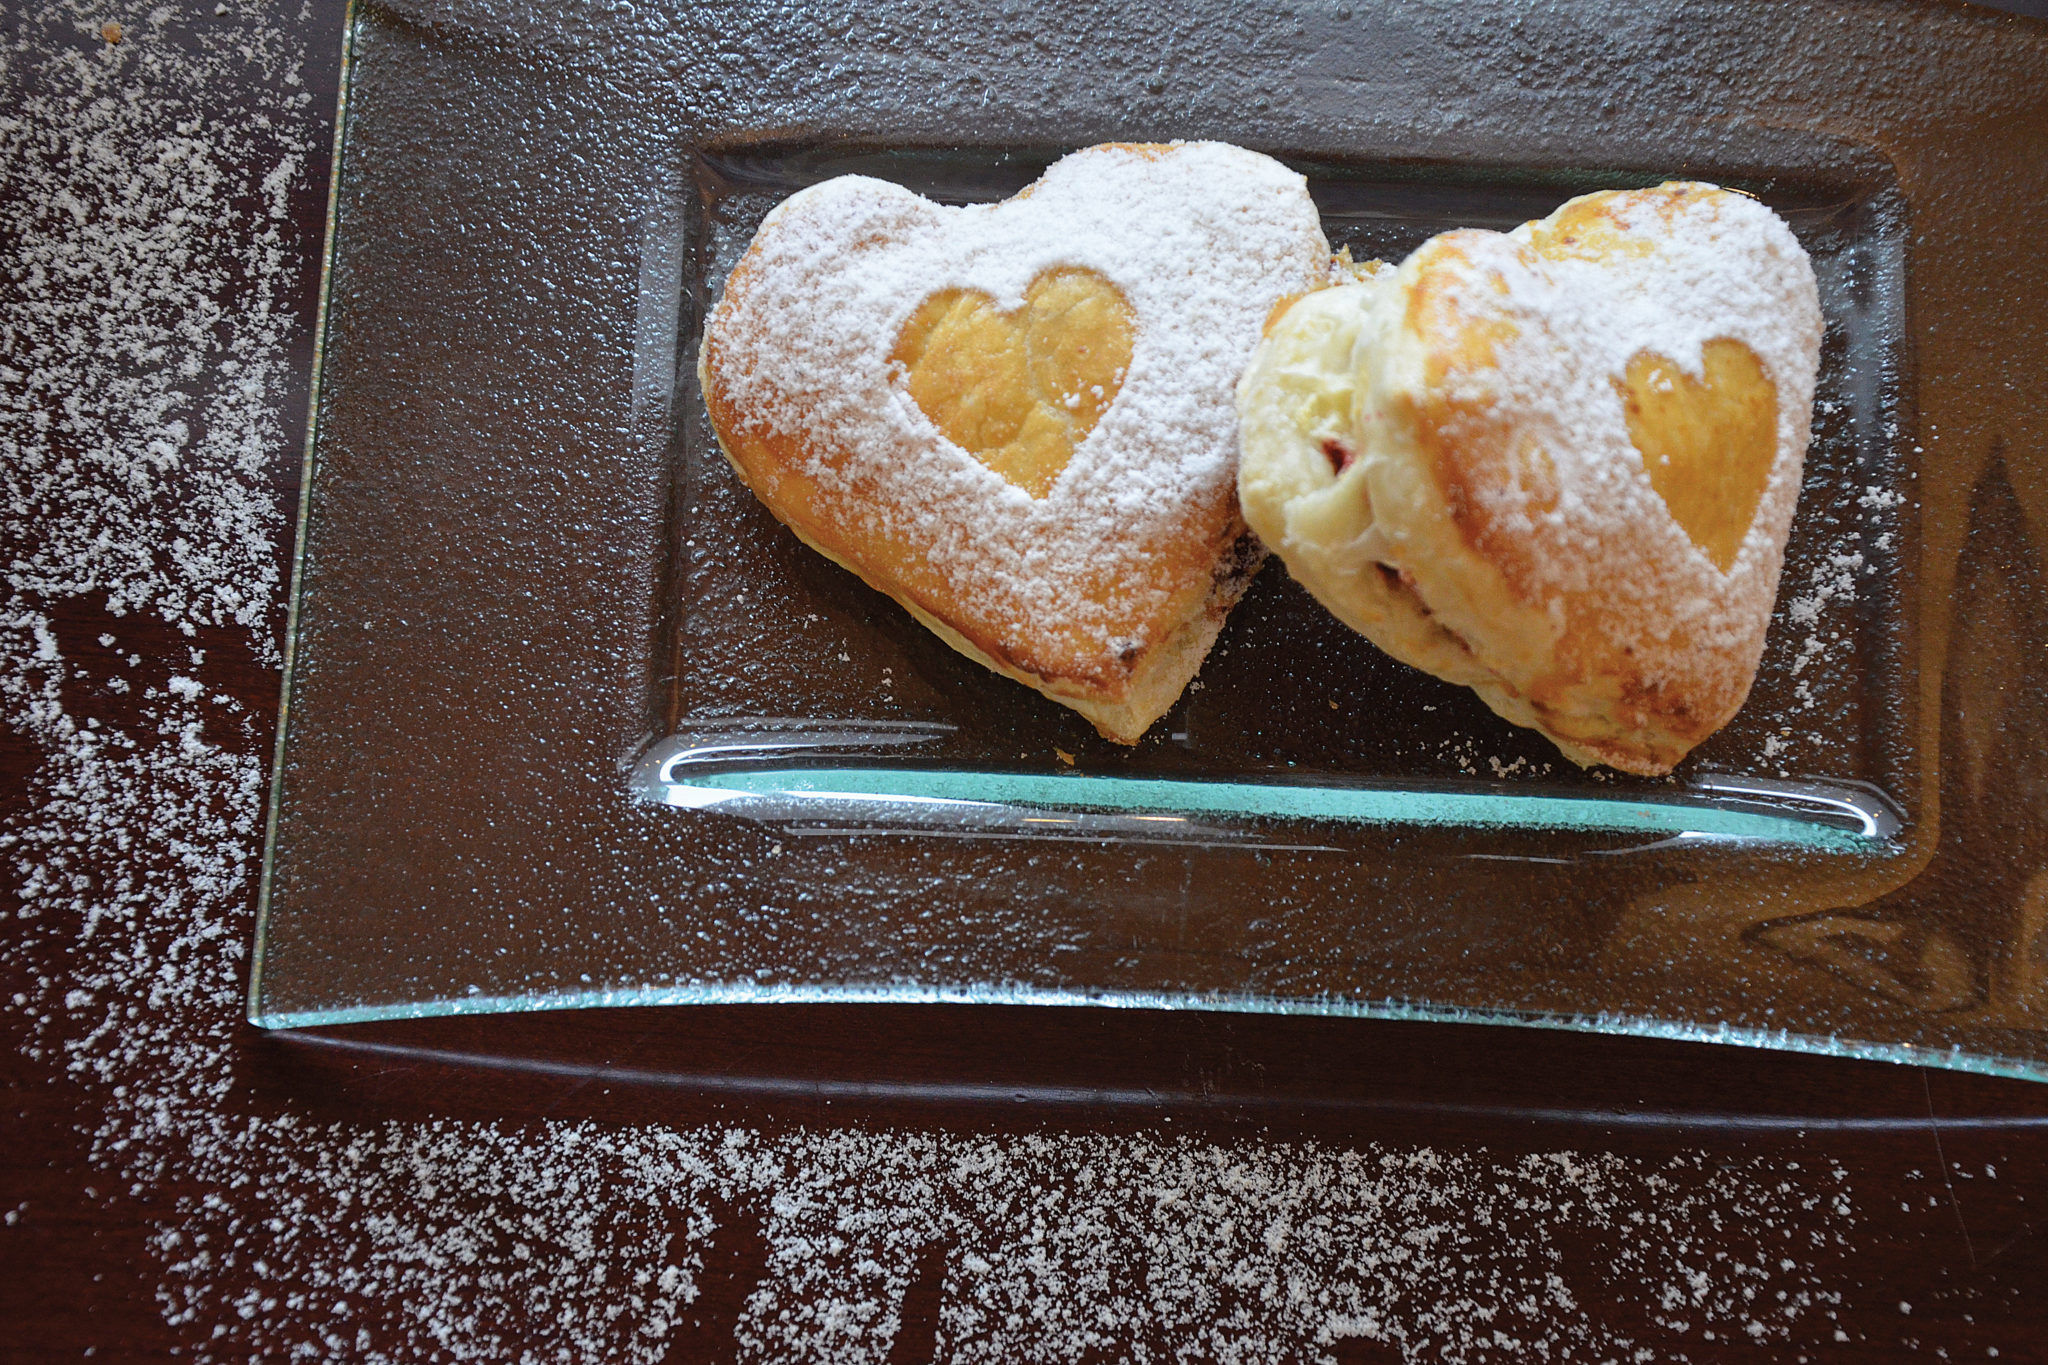 Heart-Shaped Red Velvet and Cheesecake Puff Pastry Photo courtesy of The Classic Catering People